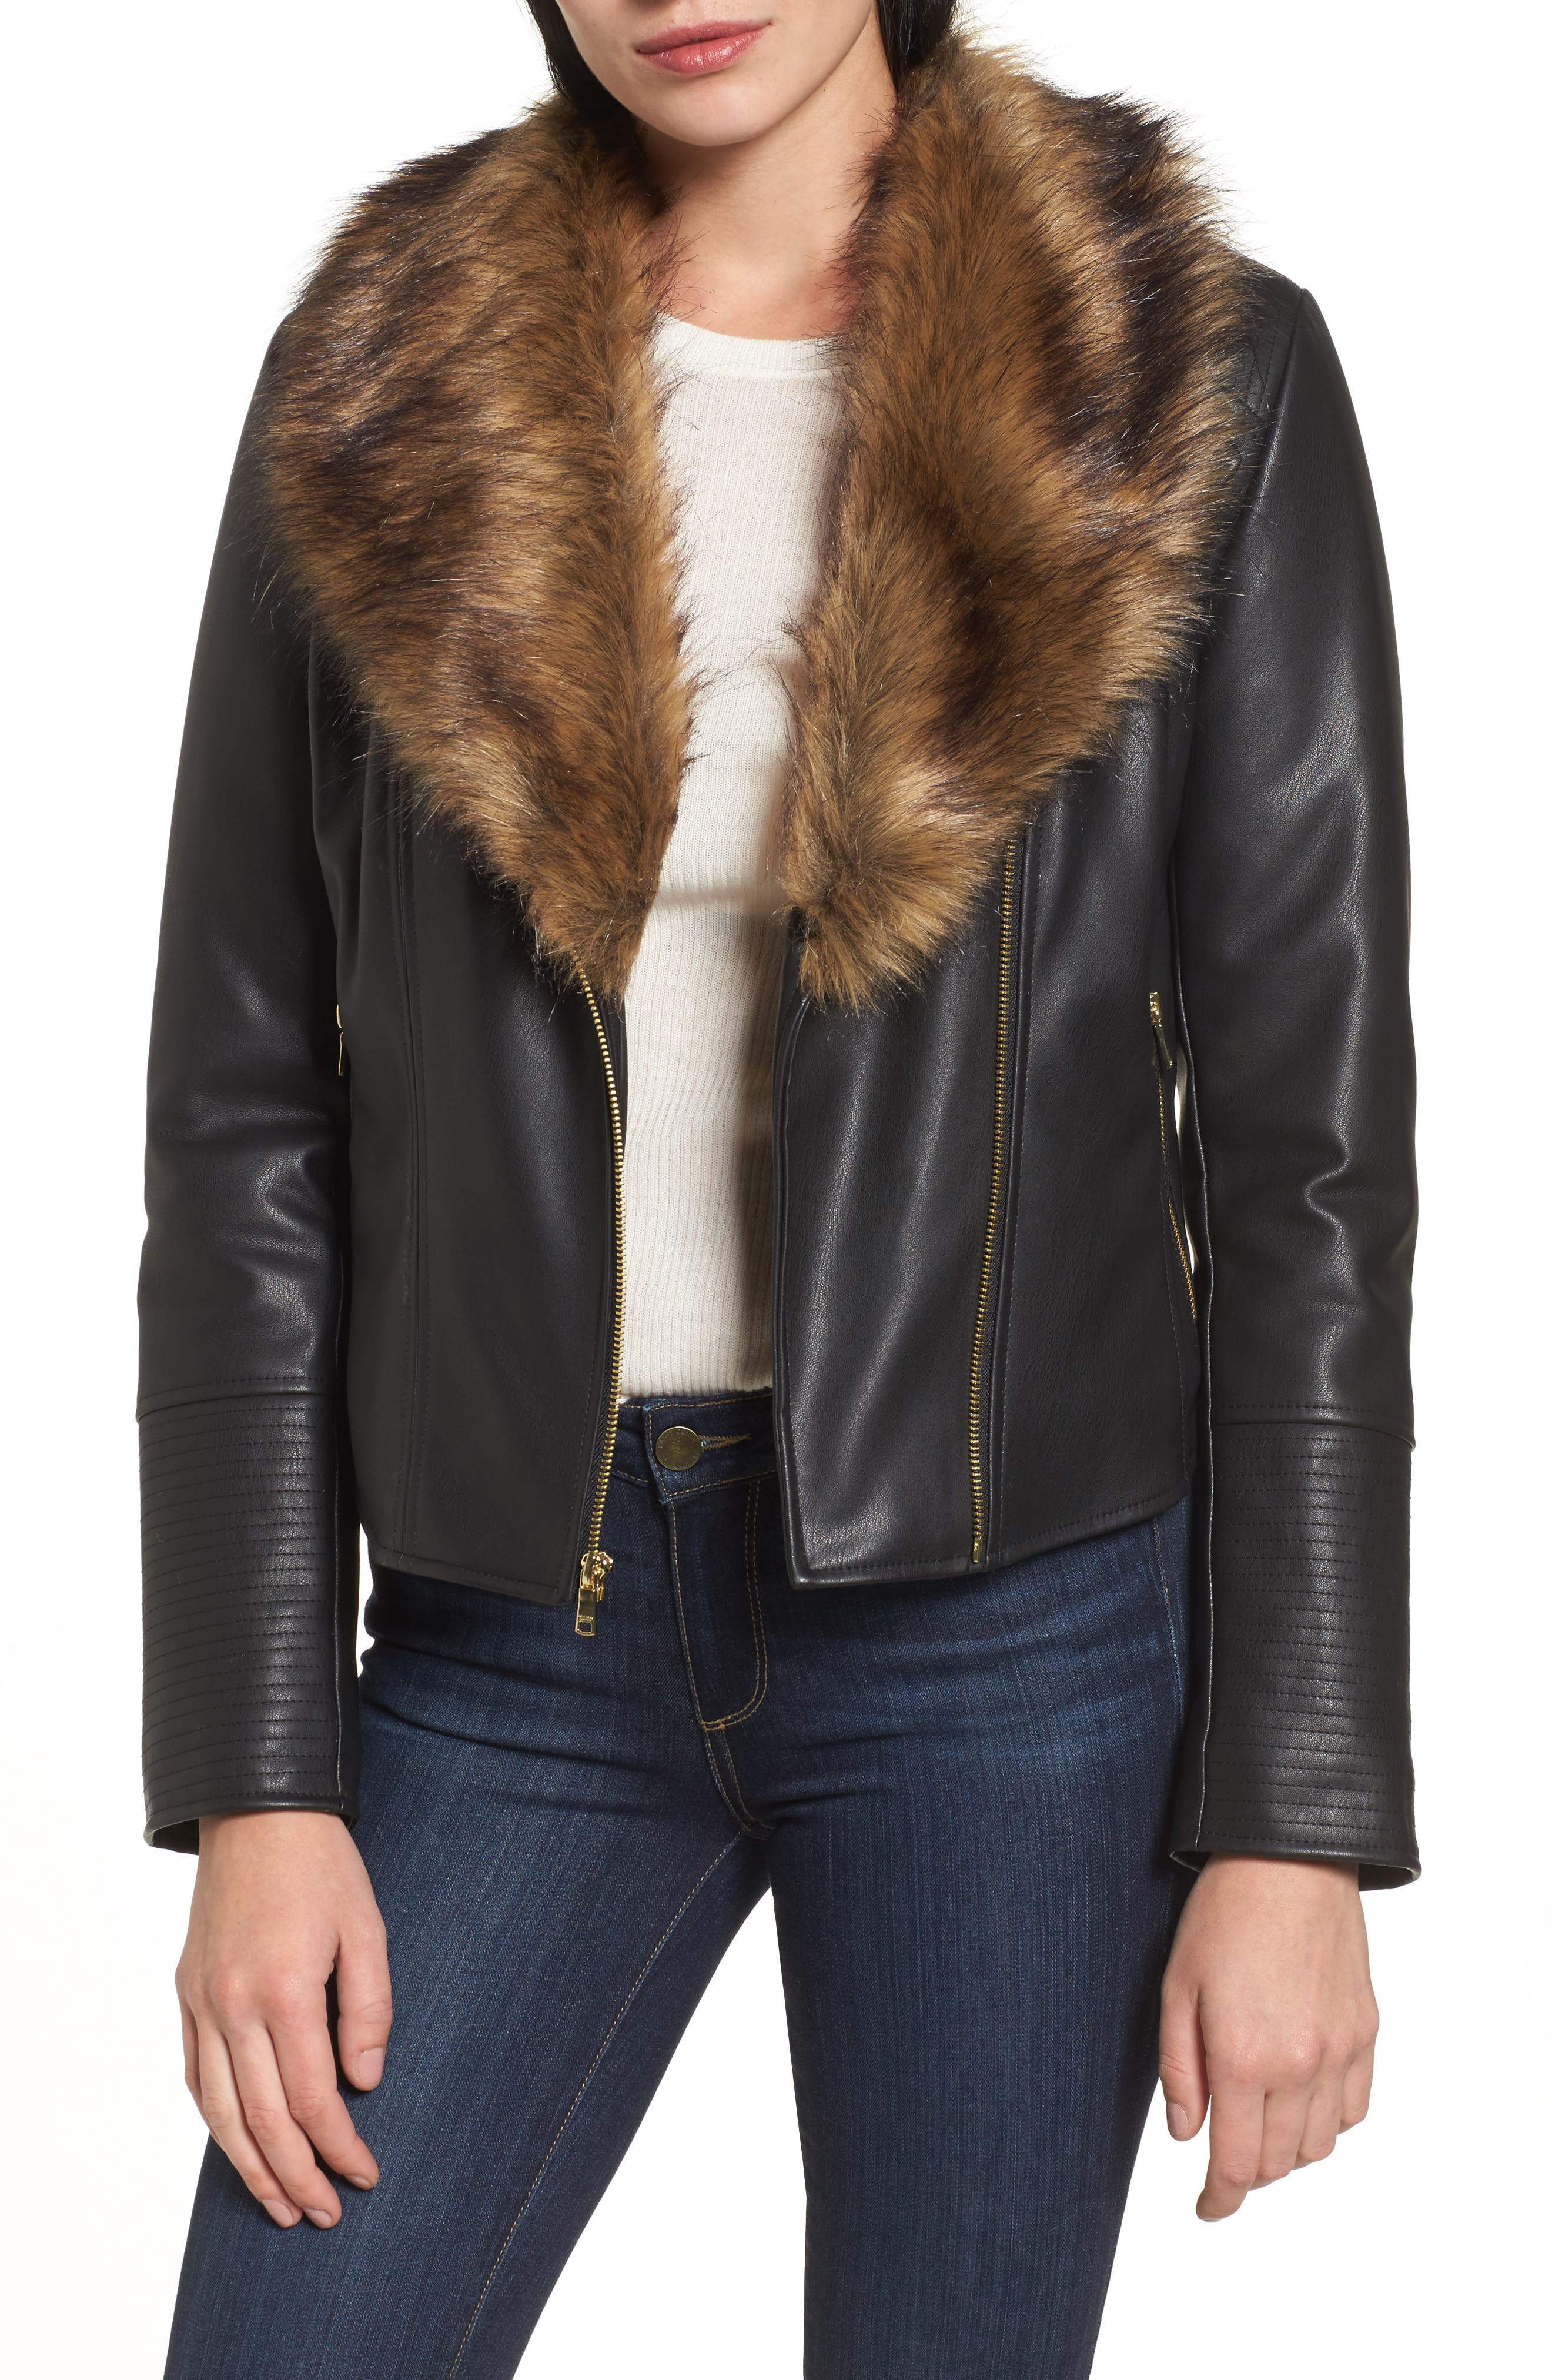 Main Image - Cole Haan Signature Faux Leather Jacket with Detachable Faux Fur